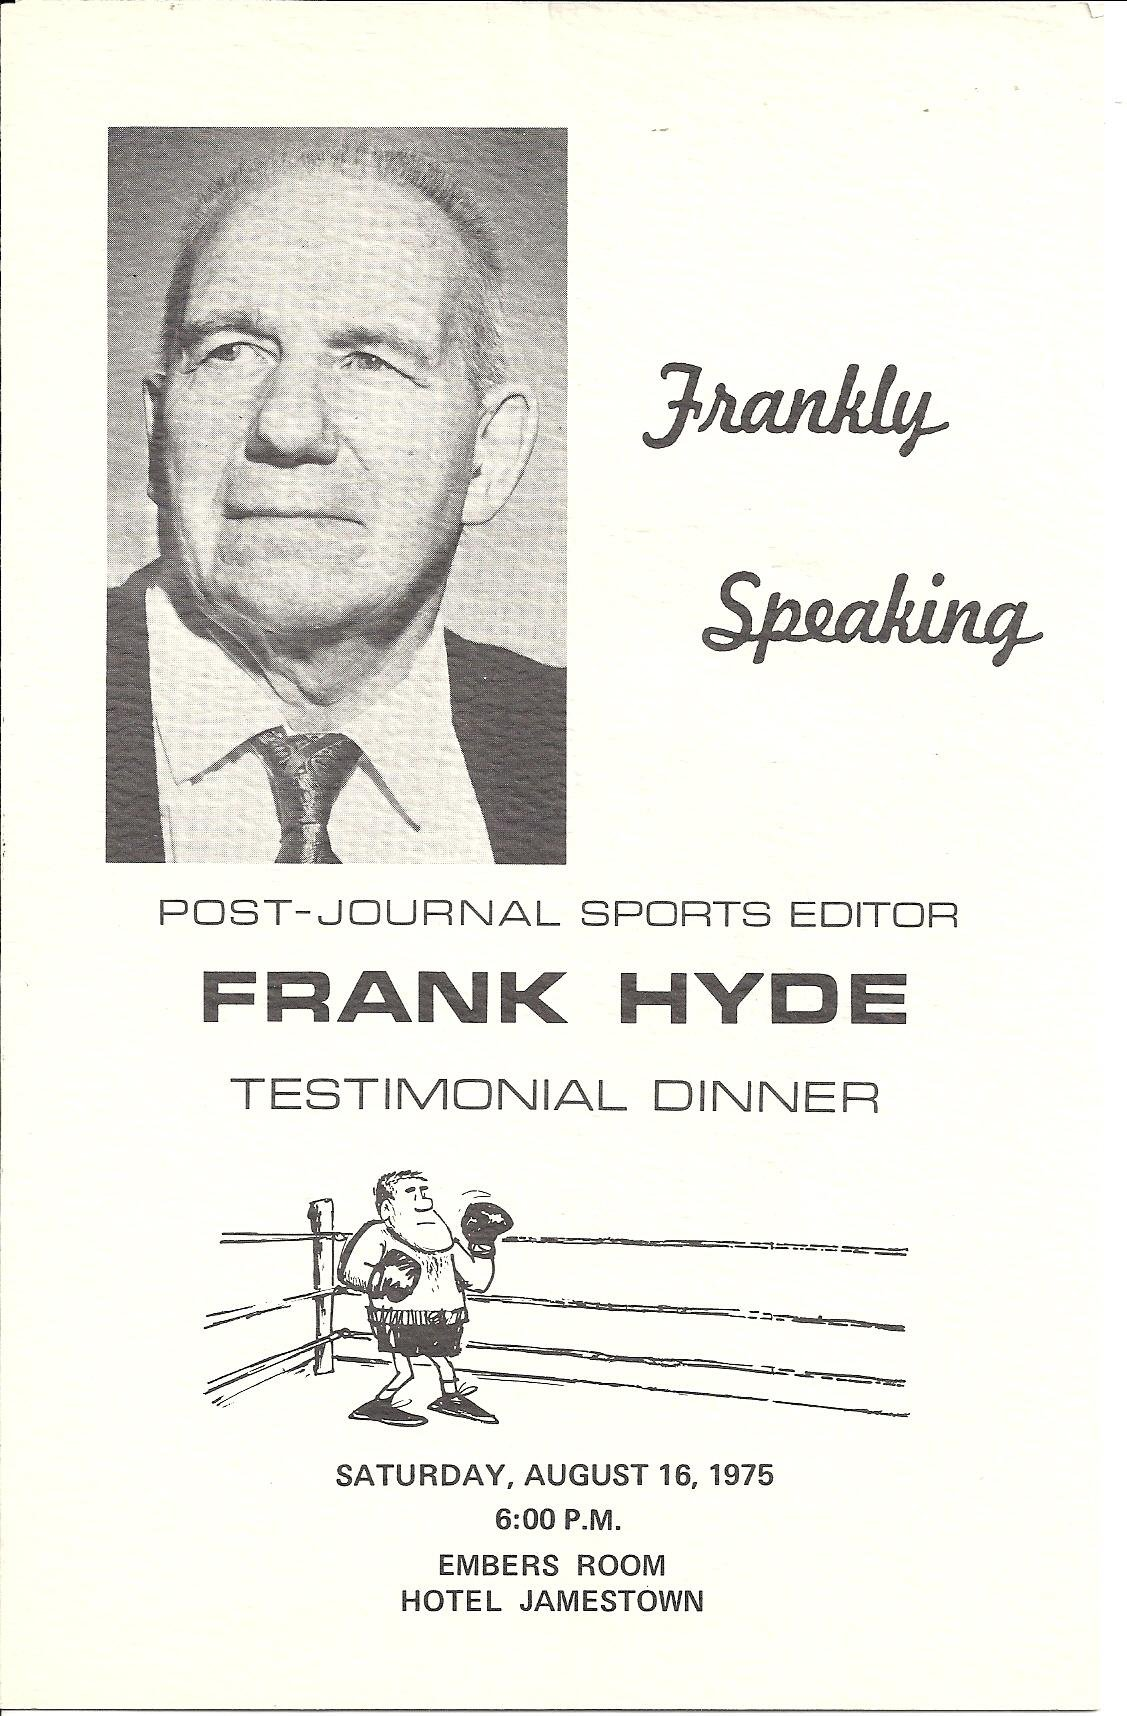 Frank Hyde Testimonial Dinner program booklet cover